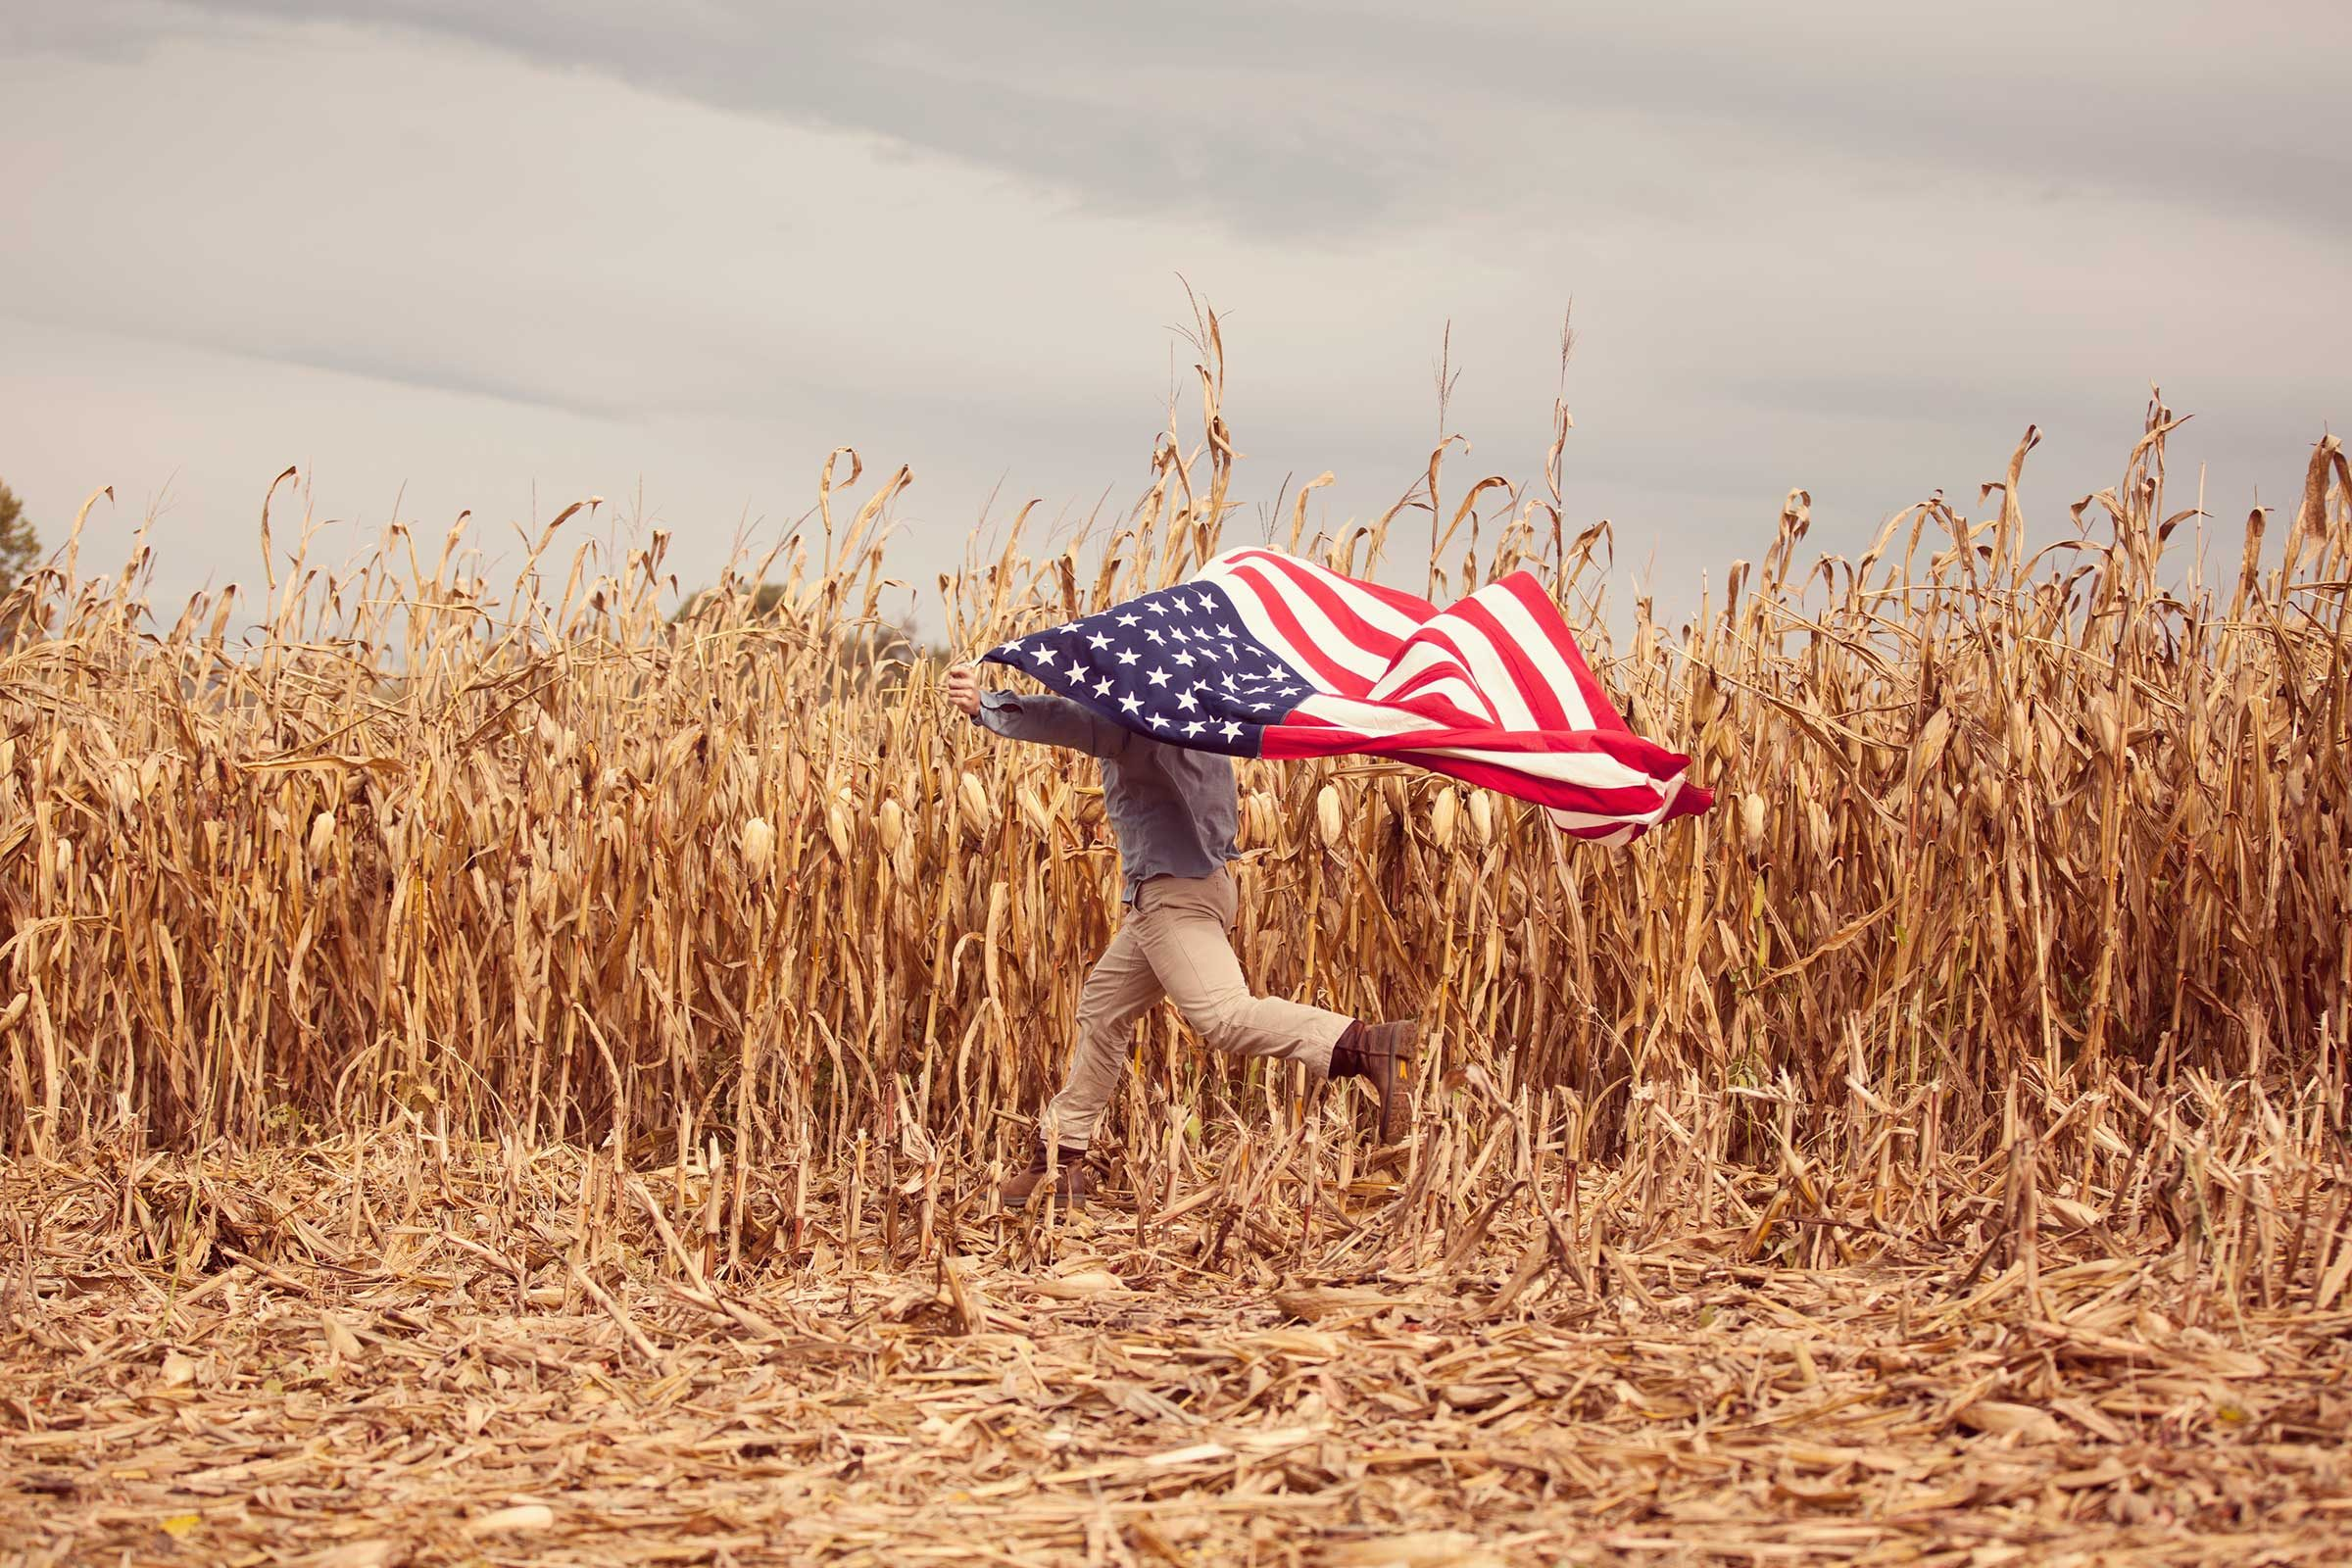 American Flag Pictures: Flag Photos Guaranteed to Make You